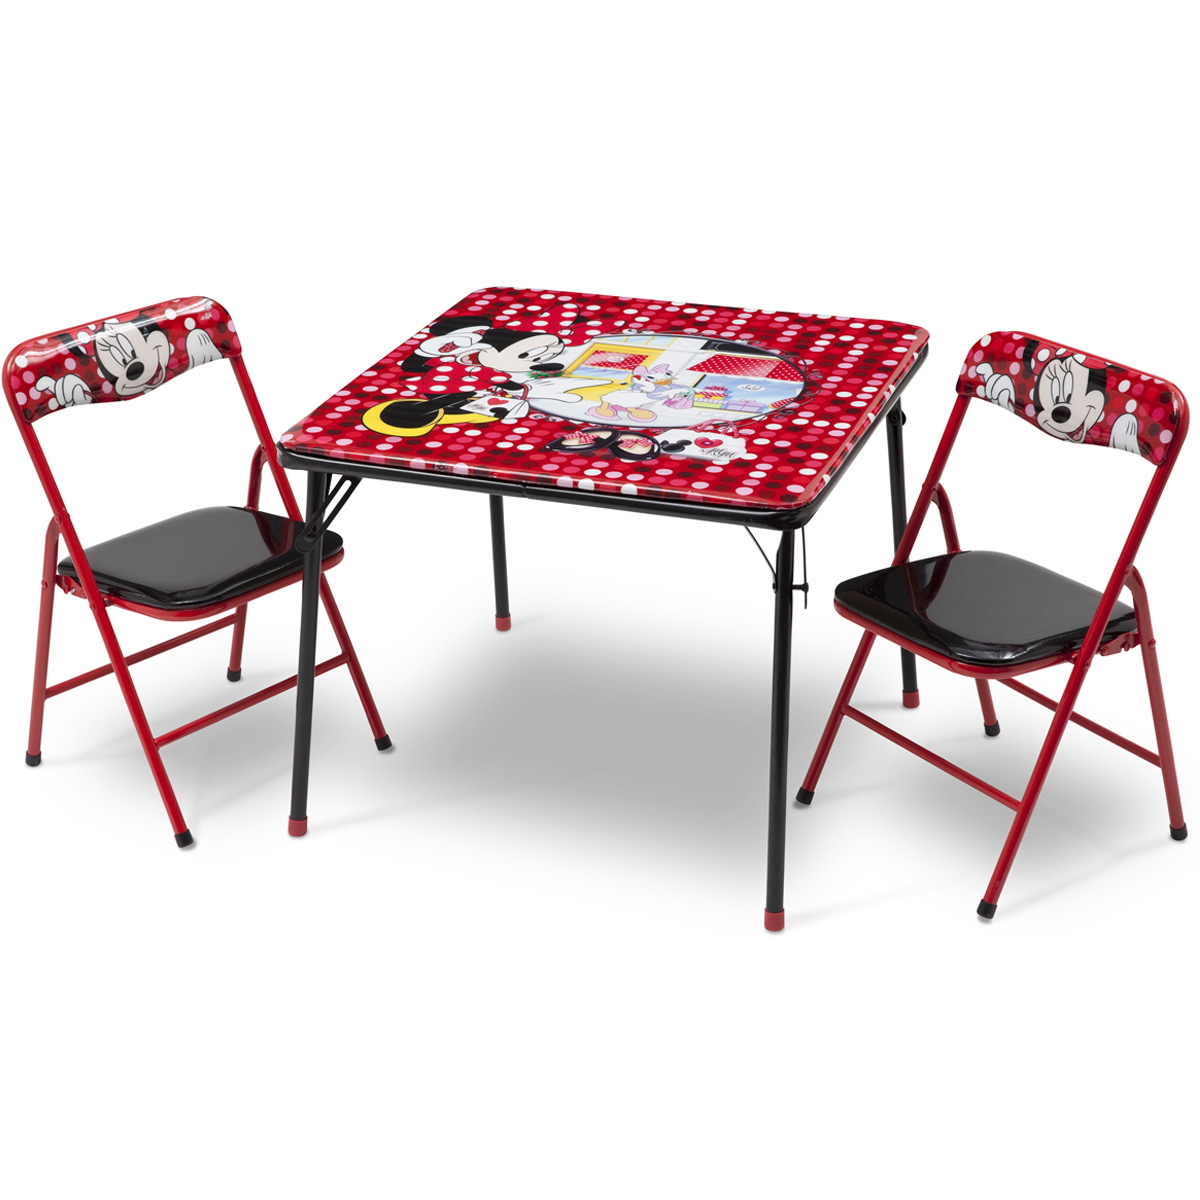 Minnie Mouse Polka Dot Folding Table and Chairs